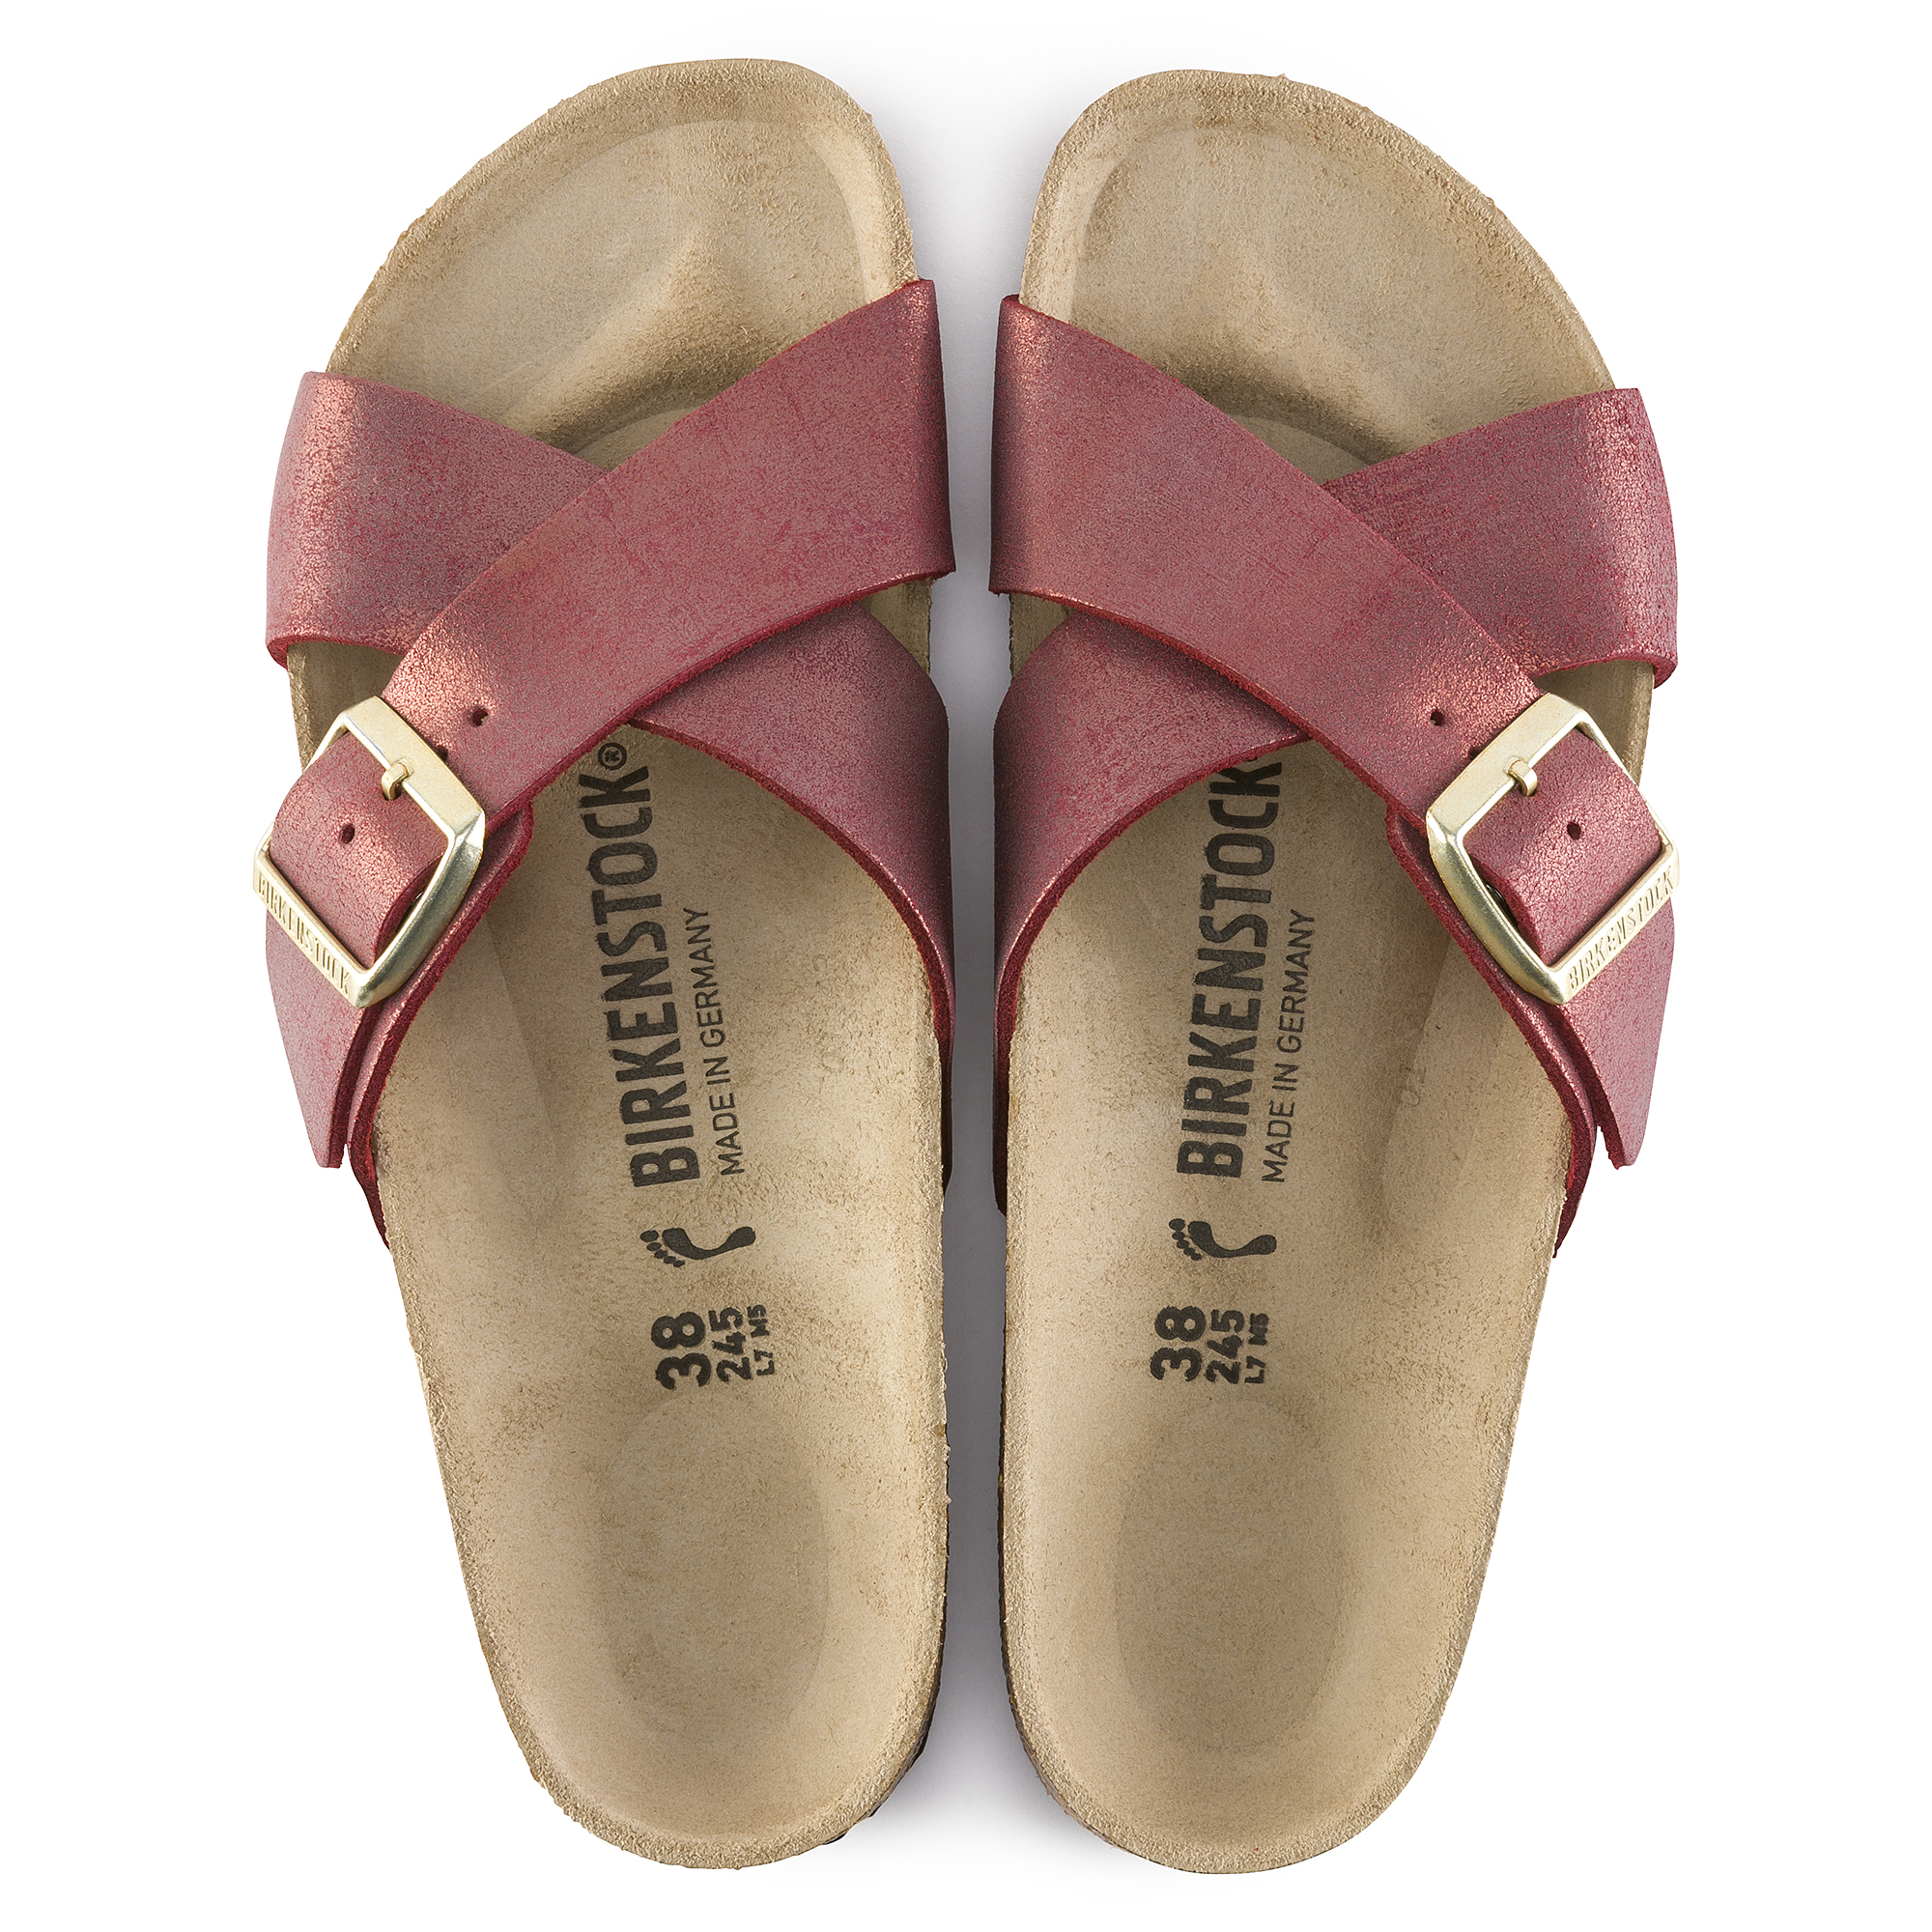 Shopping Special: BIRKENSTOCK Siena Suede Leather Washed